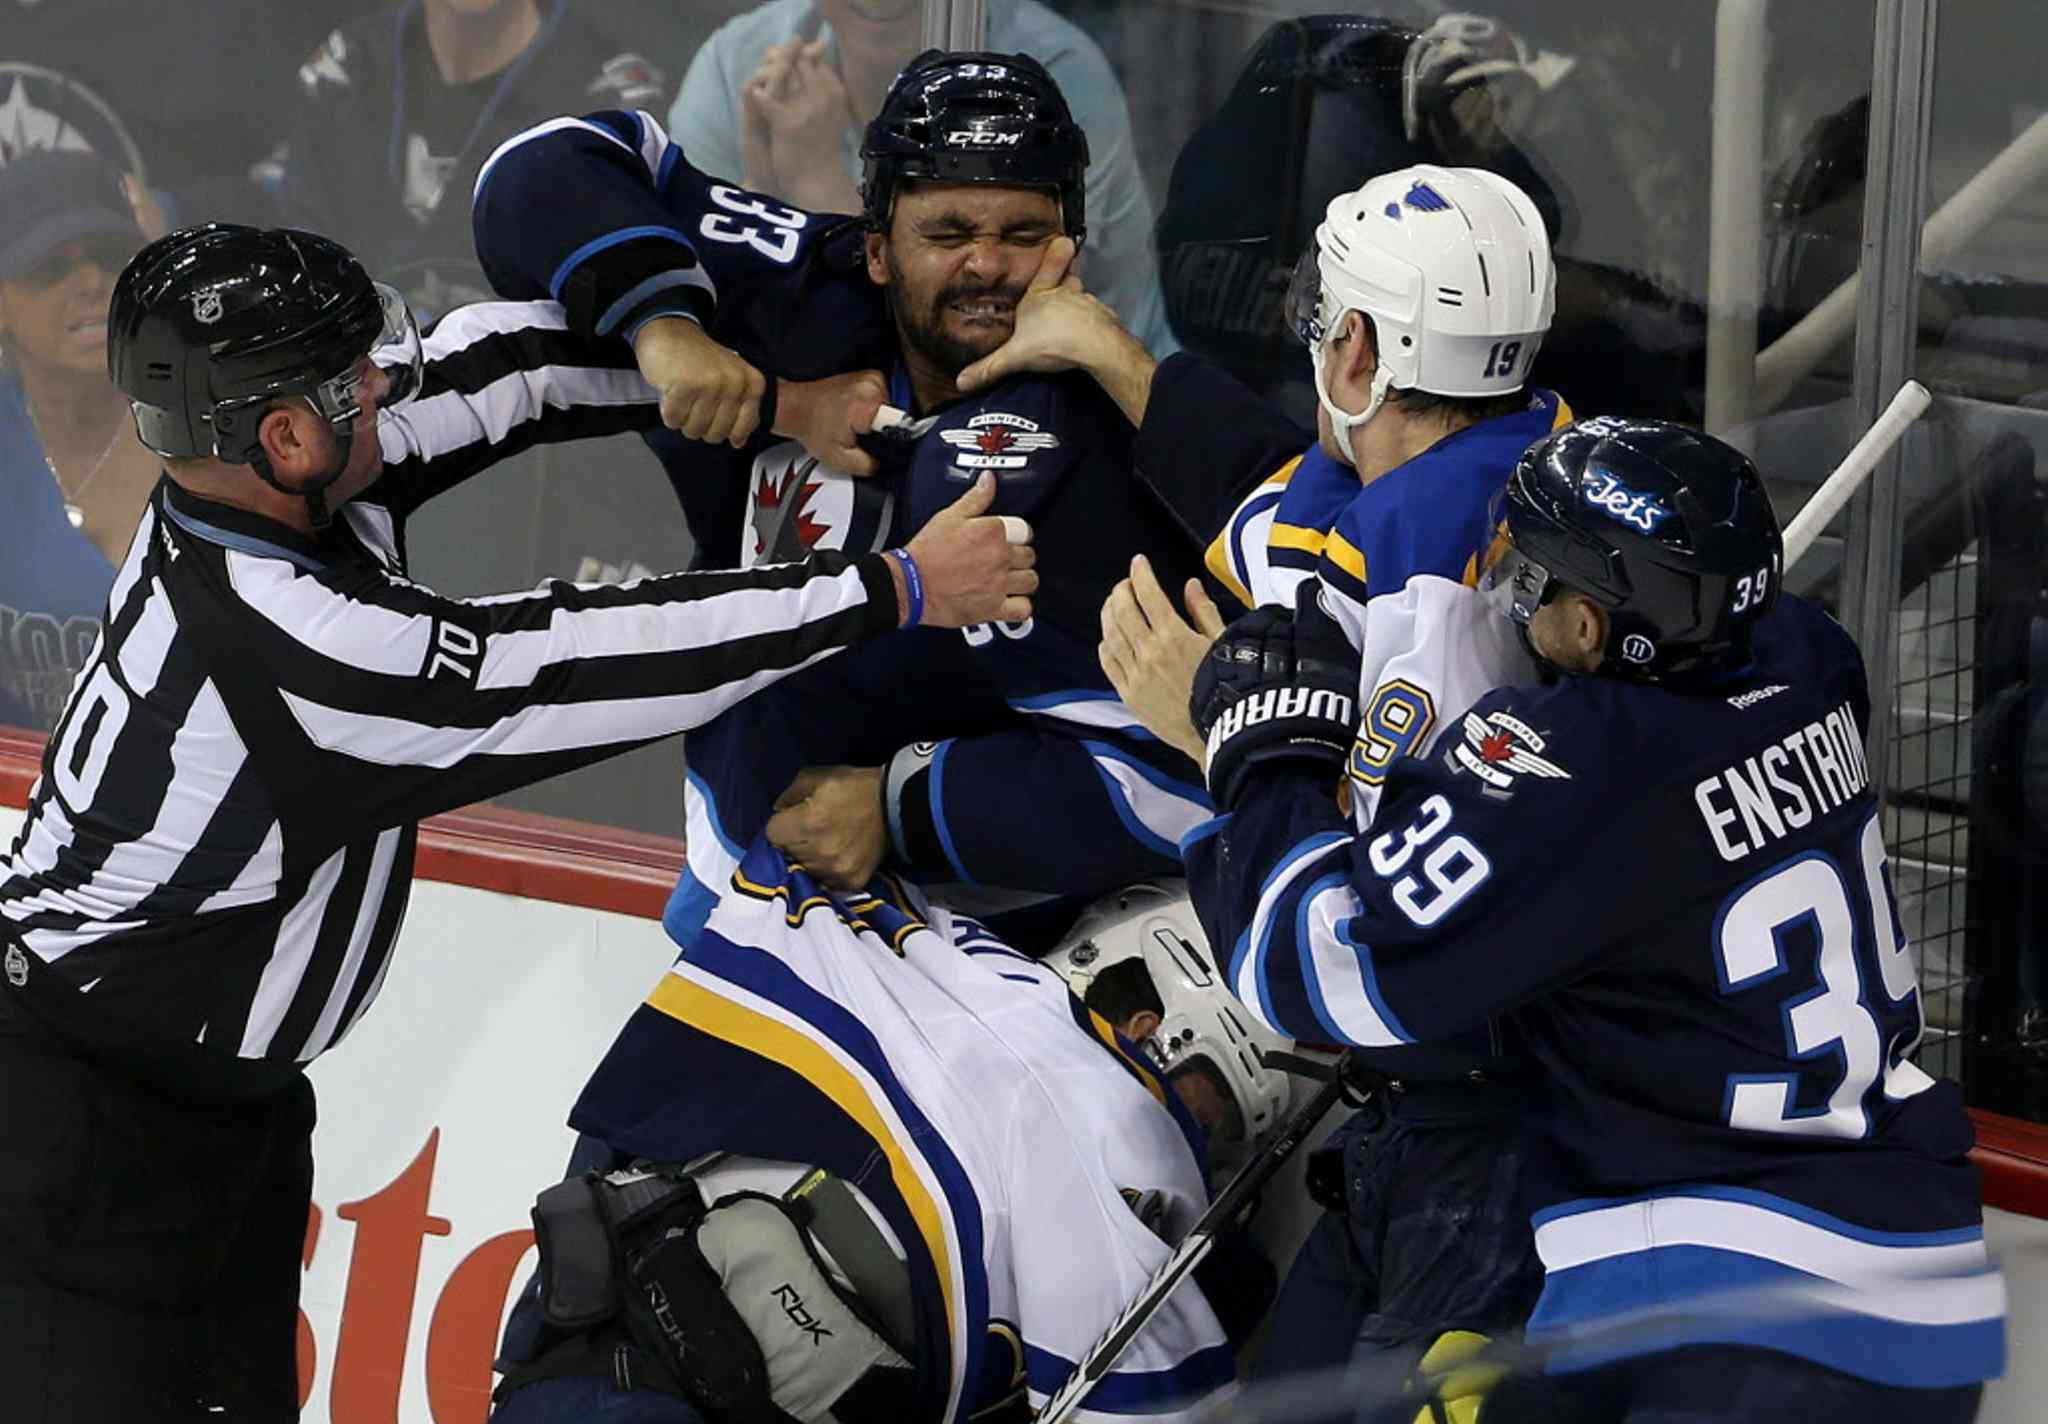 Winnipeg Jets blue-liner Dustin Byfuglien scrums with the St. Louis Blues' Scottie Upshall and Jay Bouwmeester (19) as diminutive Jets defenceman Toby Enstrom tries to make his presence felt.